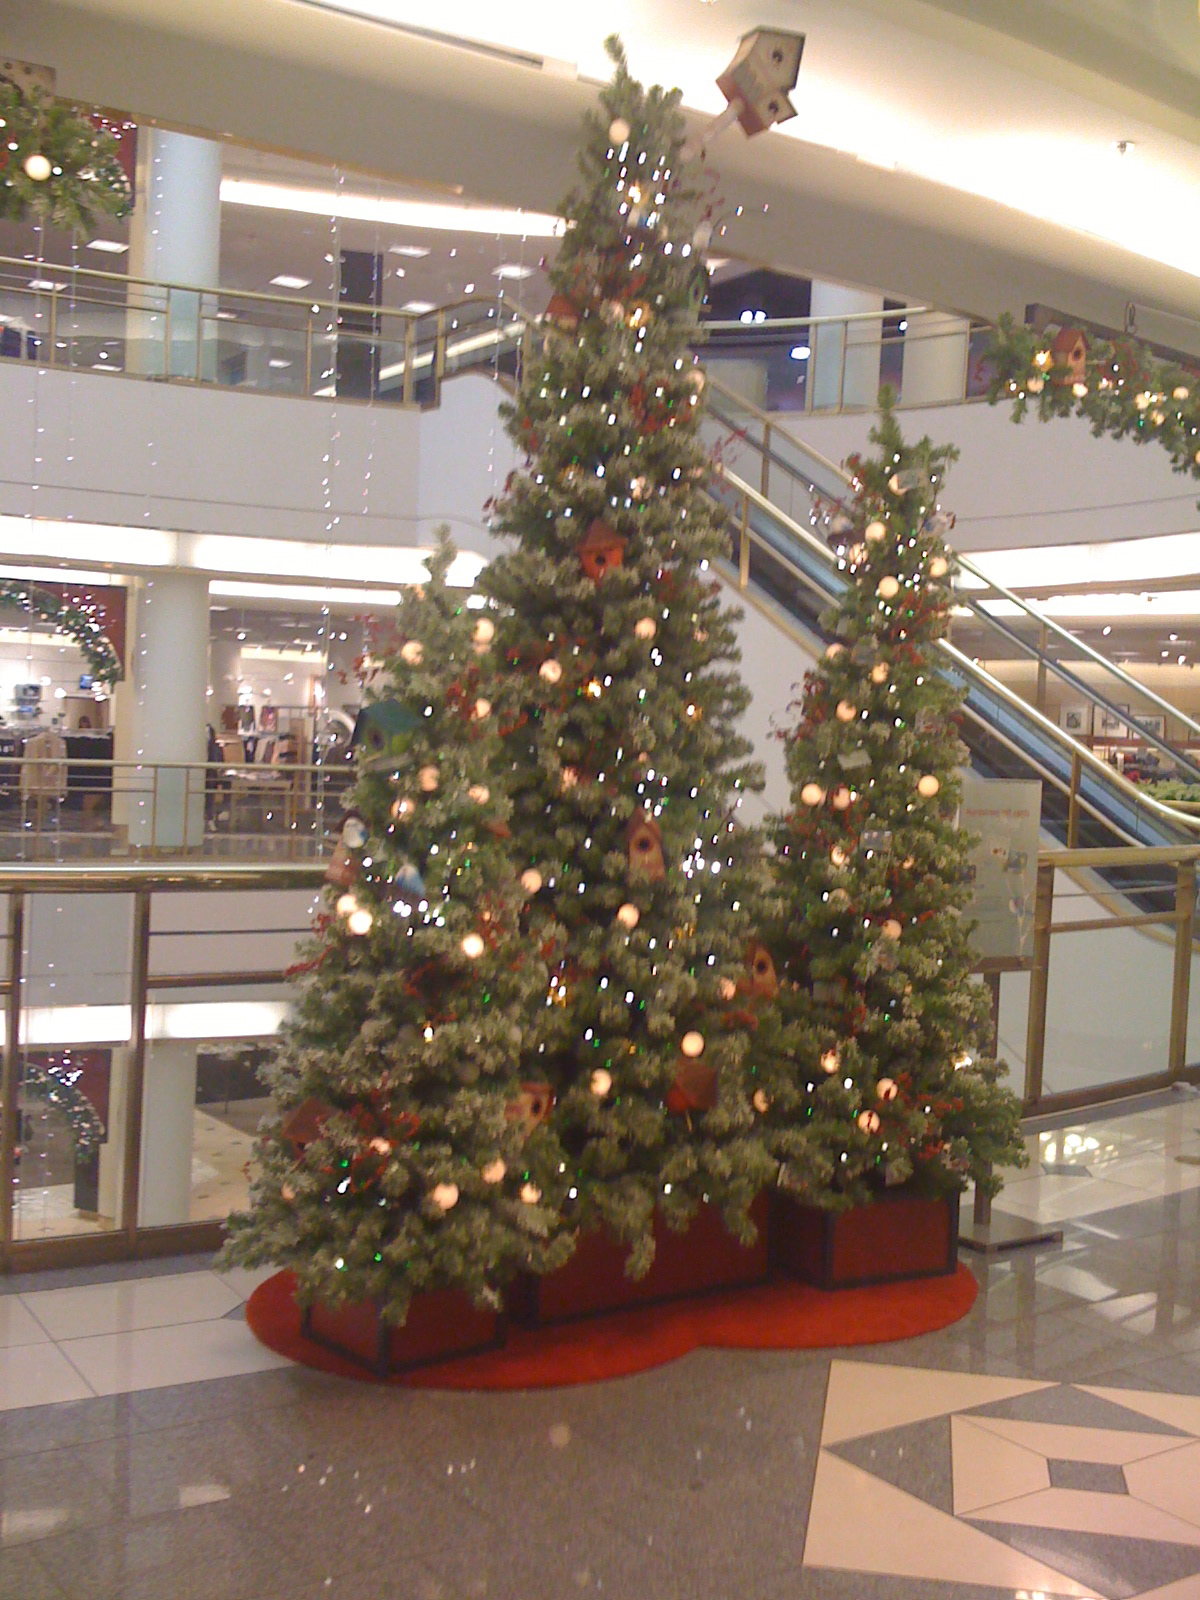 merry christmas from nordstroms - Nordstrom Christmas Decorations